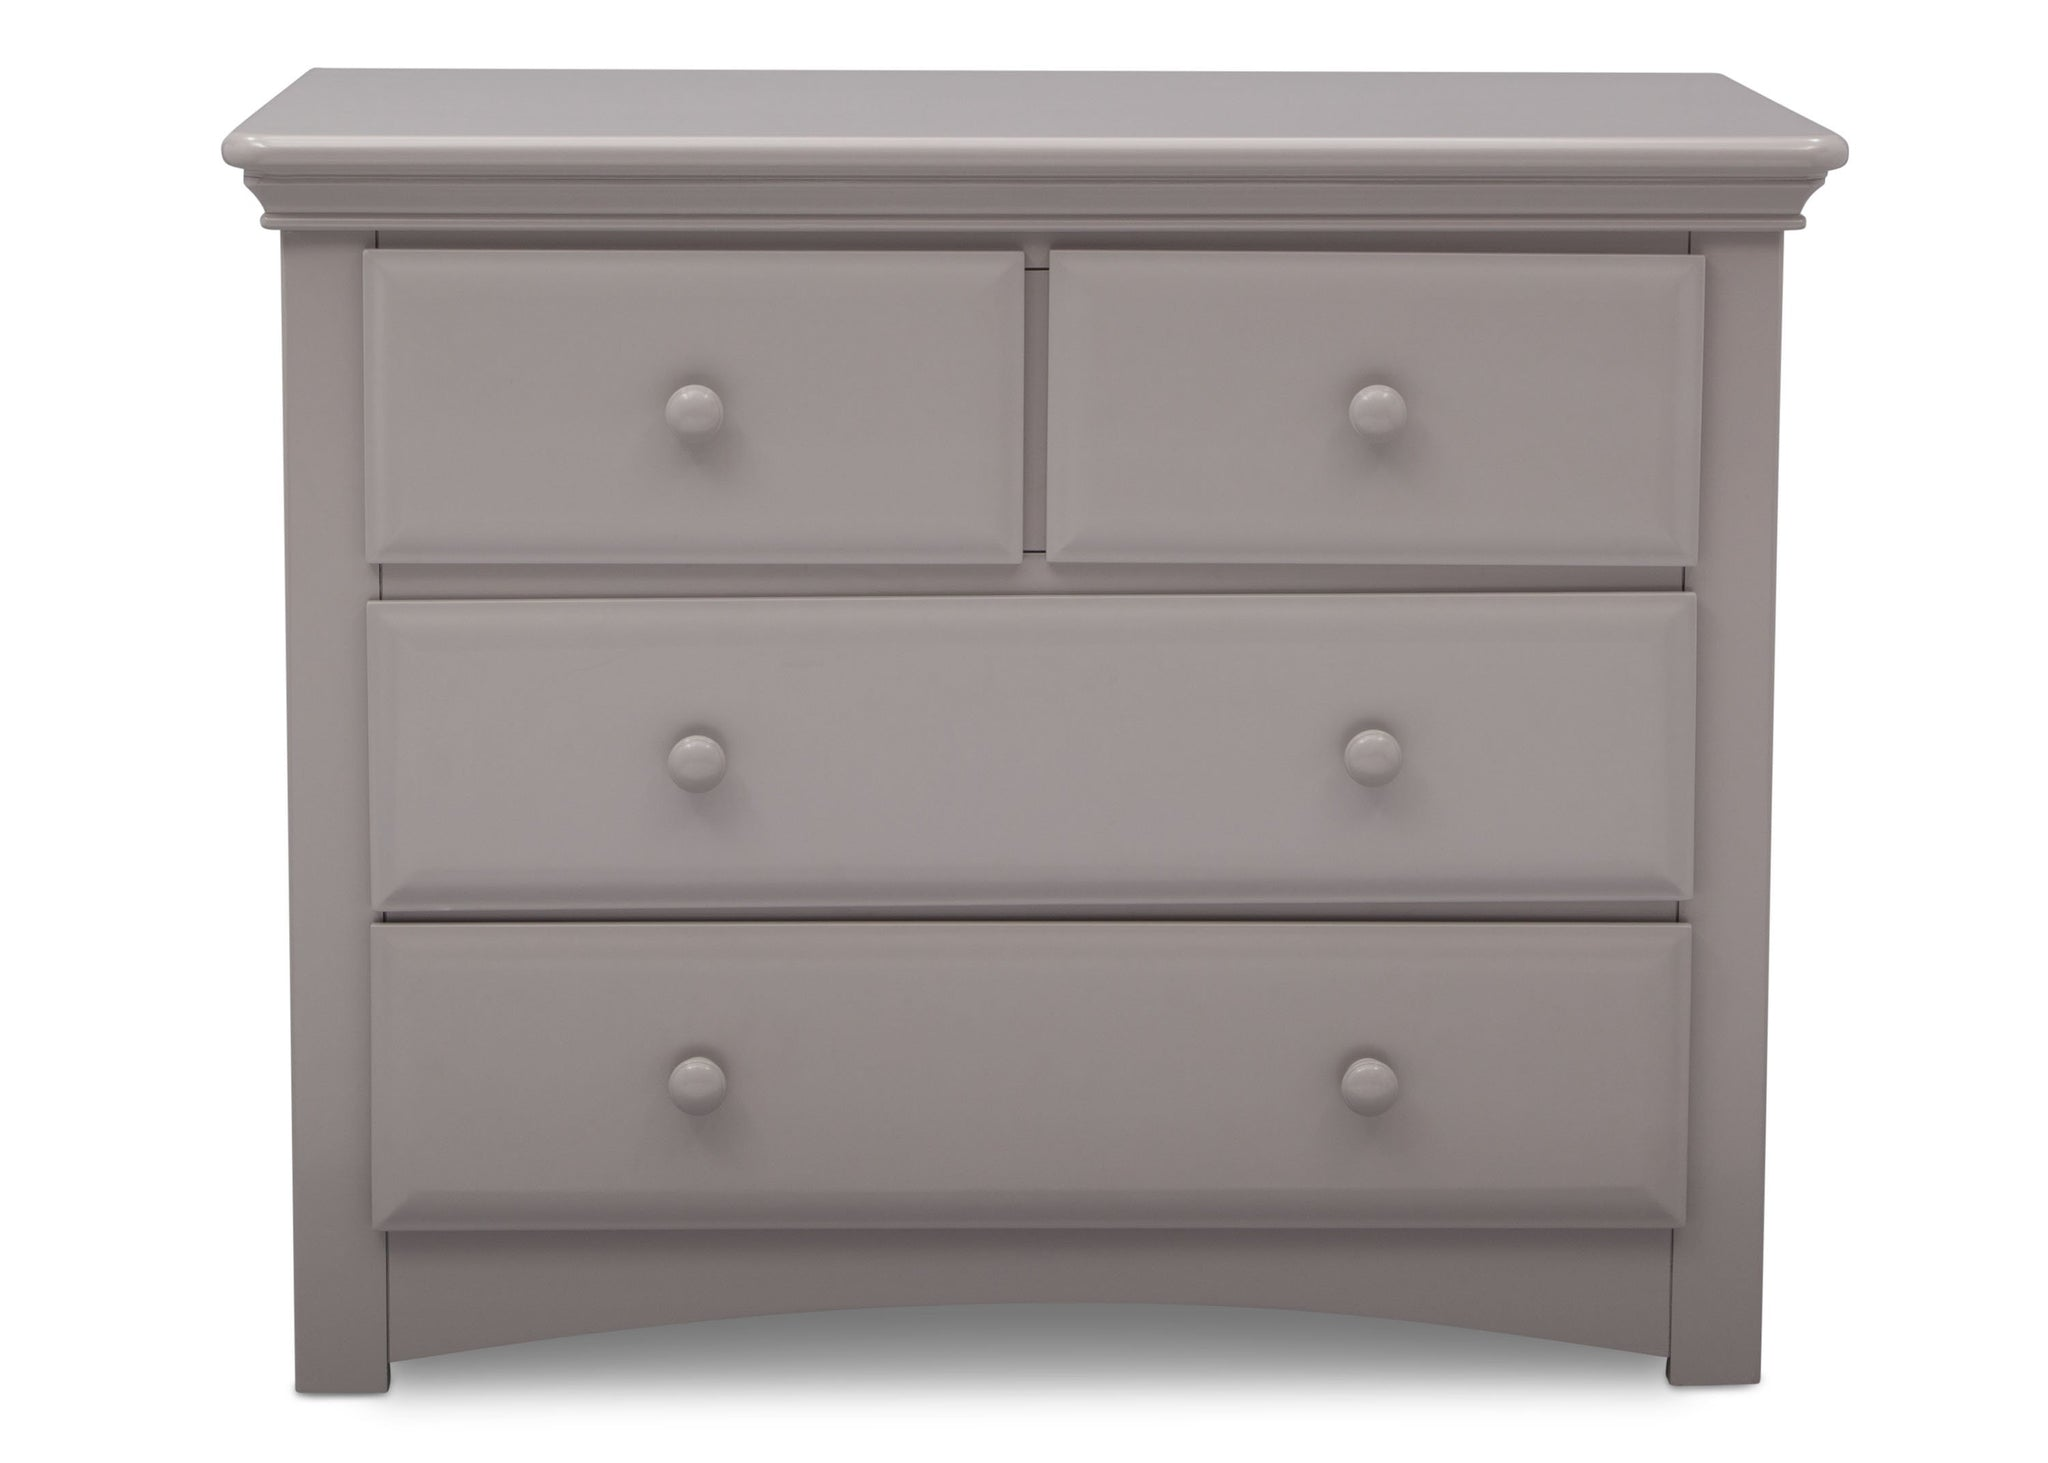 Serta Grey (026) Park Ridge 4 Drawer Dresser (702640), Straight, a2a